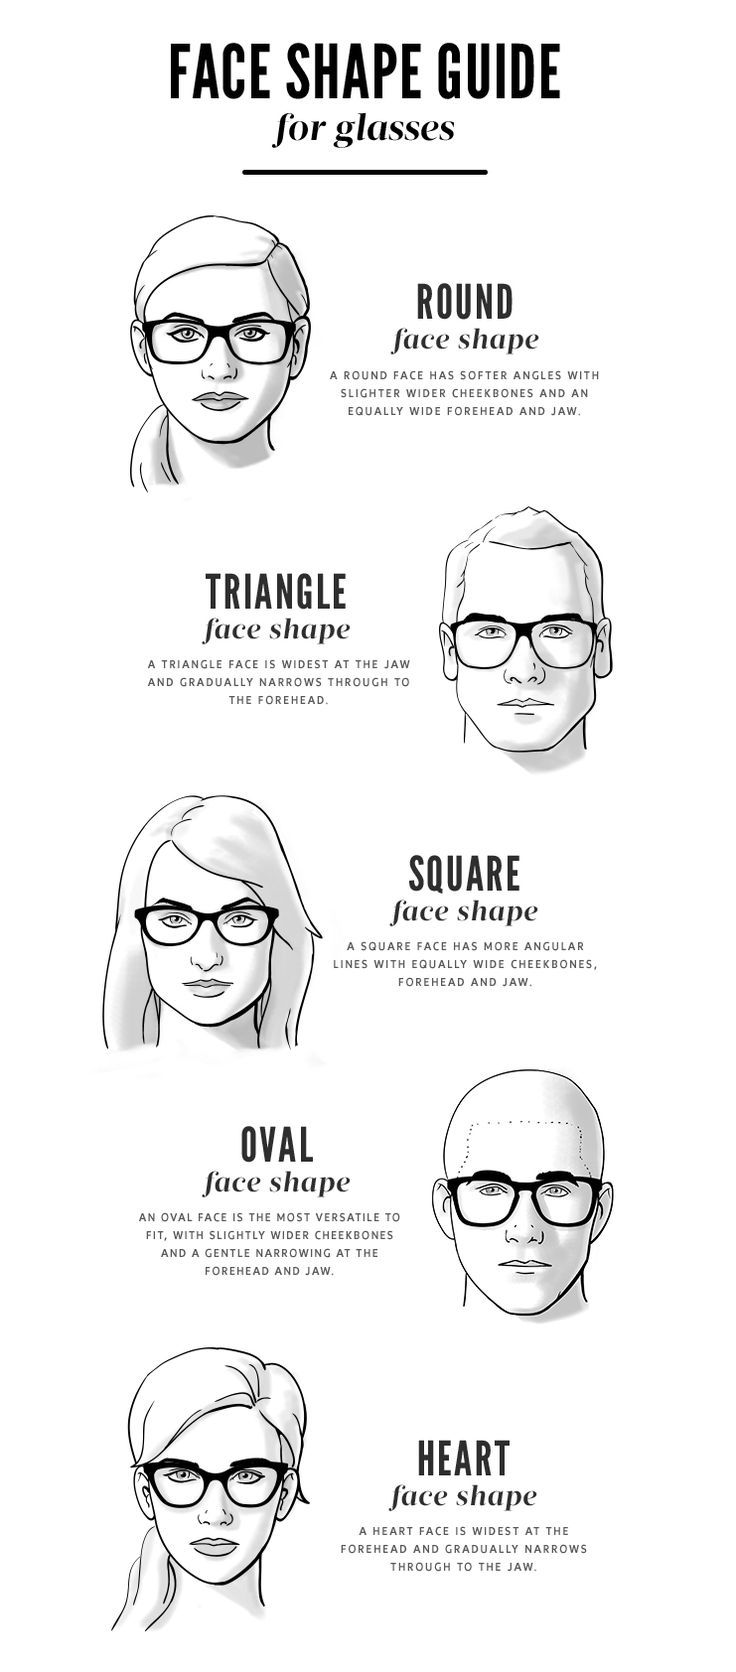 Glasses Frames For Square Face Shape : Face Shape Guide for Glasses Which glasses shape best ...